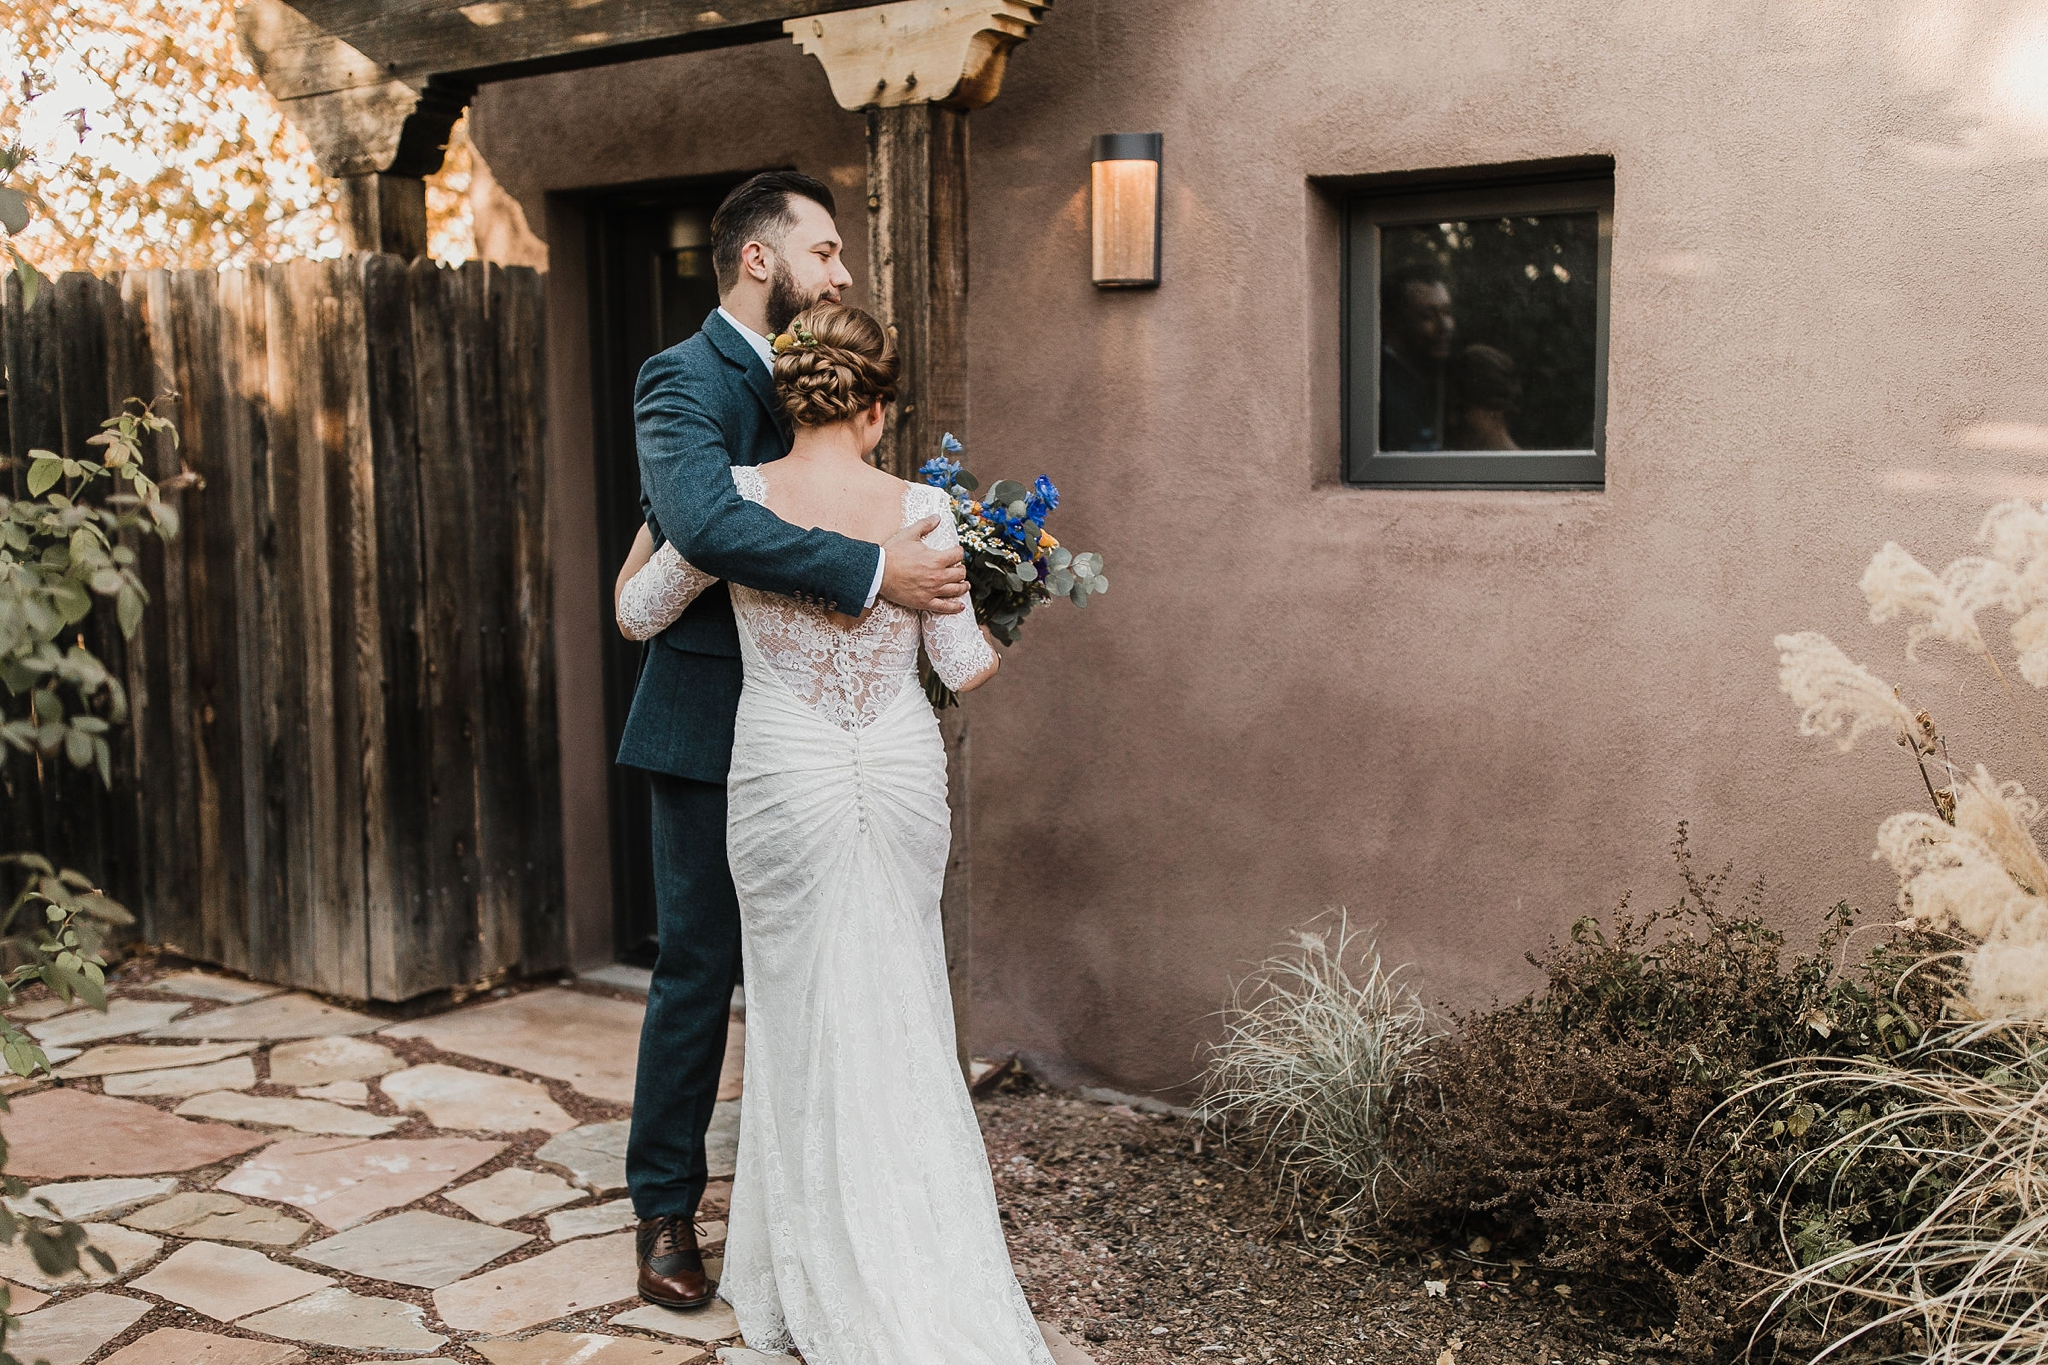 Alicia+lucia+photography+-+albuquerque+wedding+photographer+-+santa+fe+wedding+photography+-+new+mexico+wedding+photographer+-+albuquerque+wedding+-+sarabande+bed+breakfast+-+bed+and+breakfast+wedding_0023.jpg